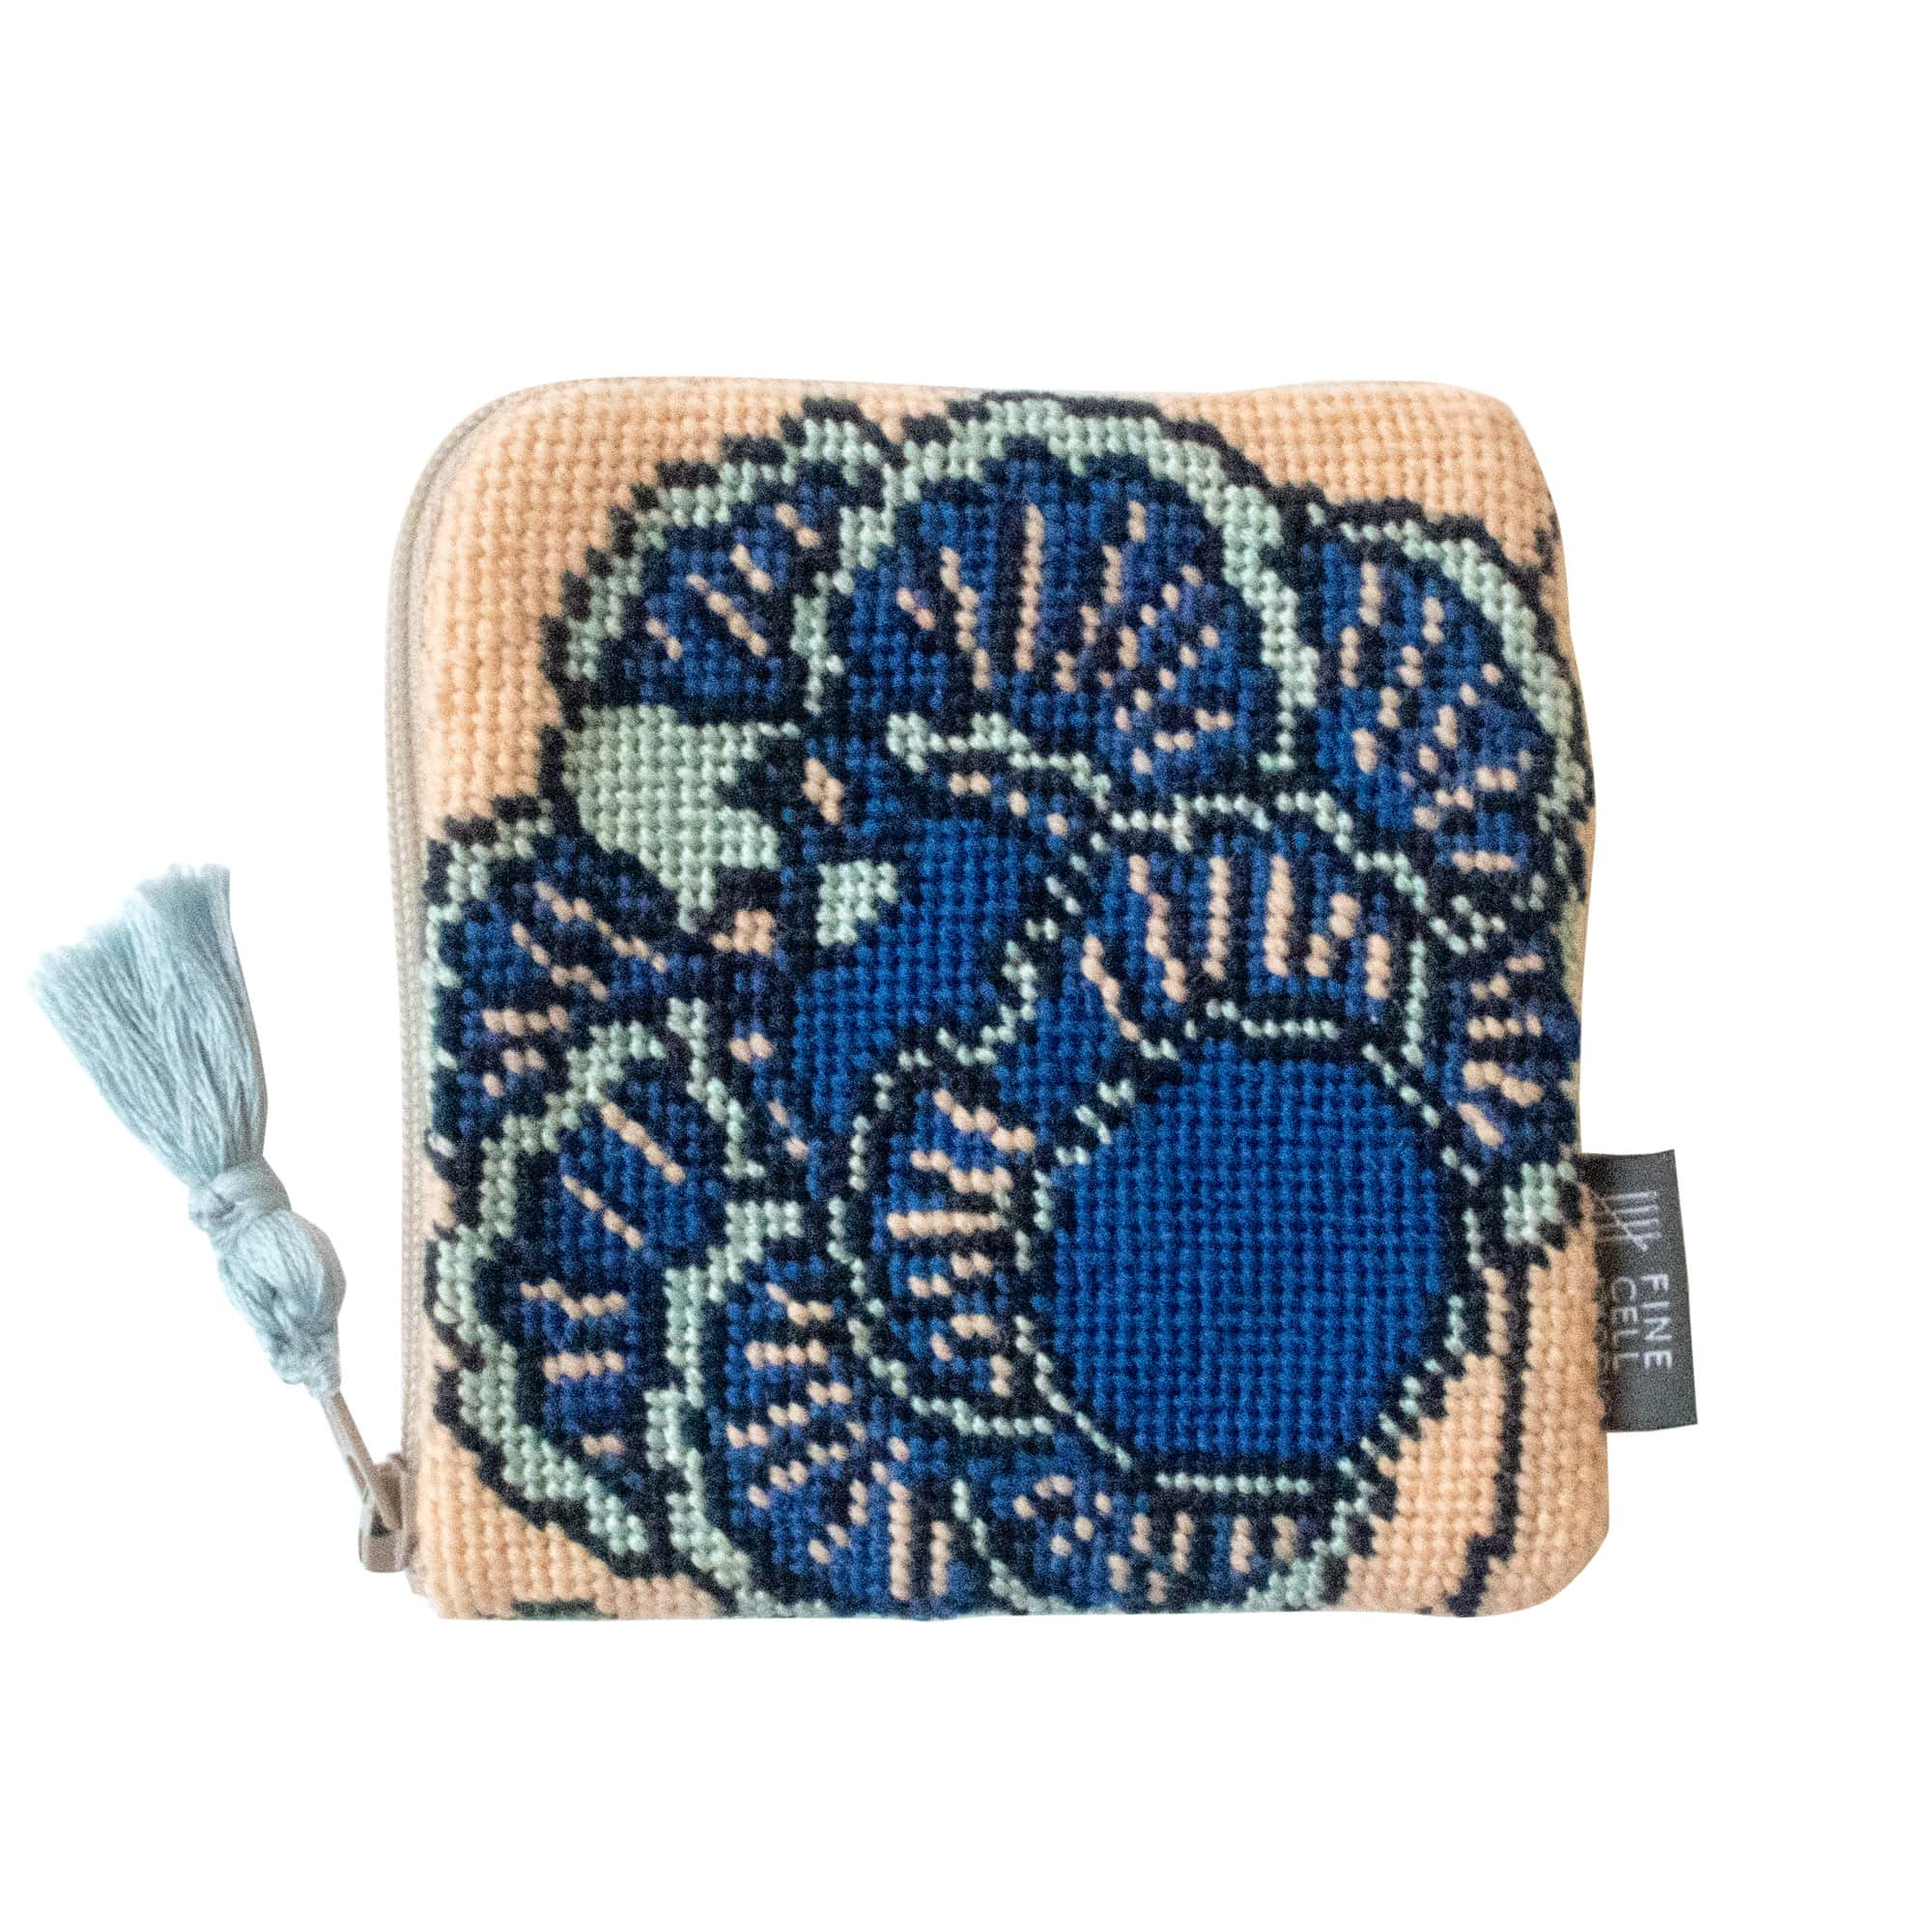 Fine Cell Work Neisha Crosland Tango Purse Hyacinth Blue